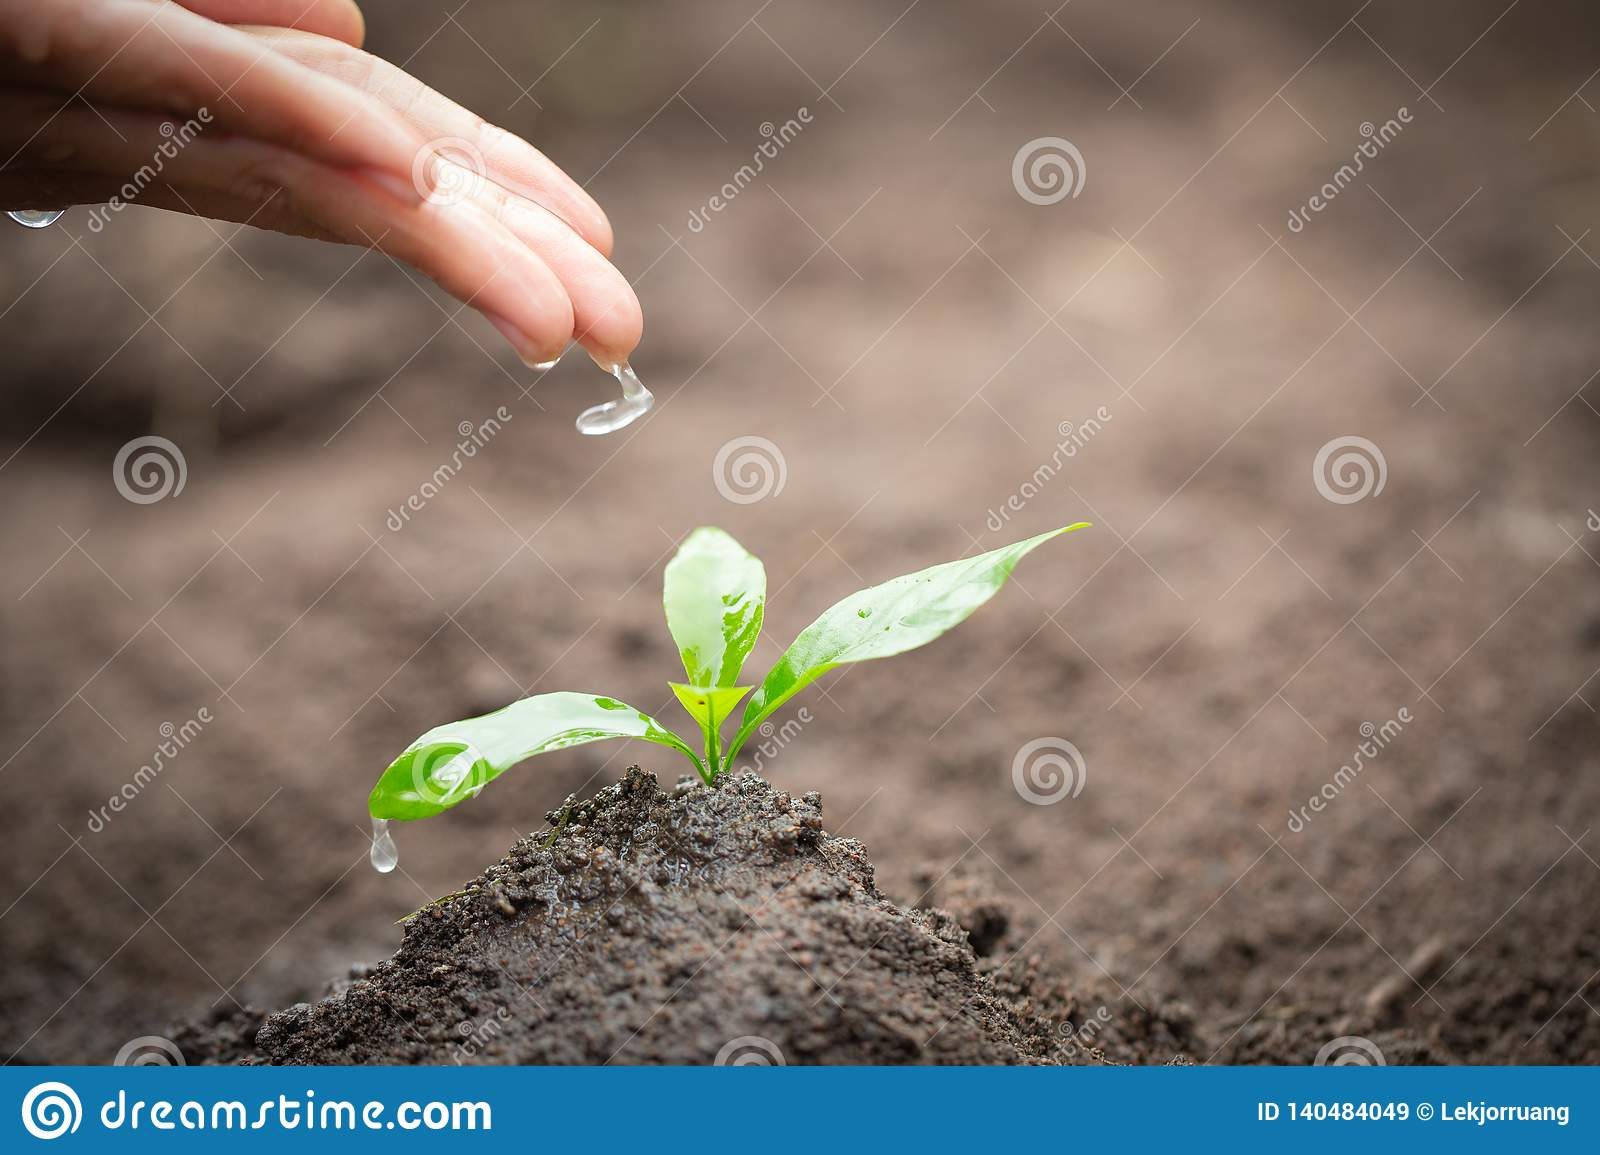 The hands are dripping water to the small seedlings, plant a tree, reduce global warming, World Environment Day